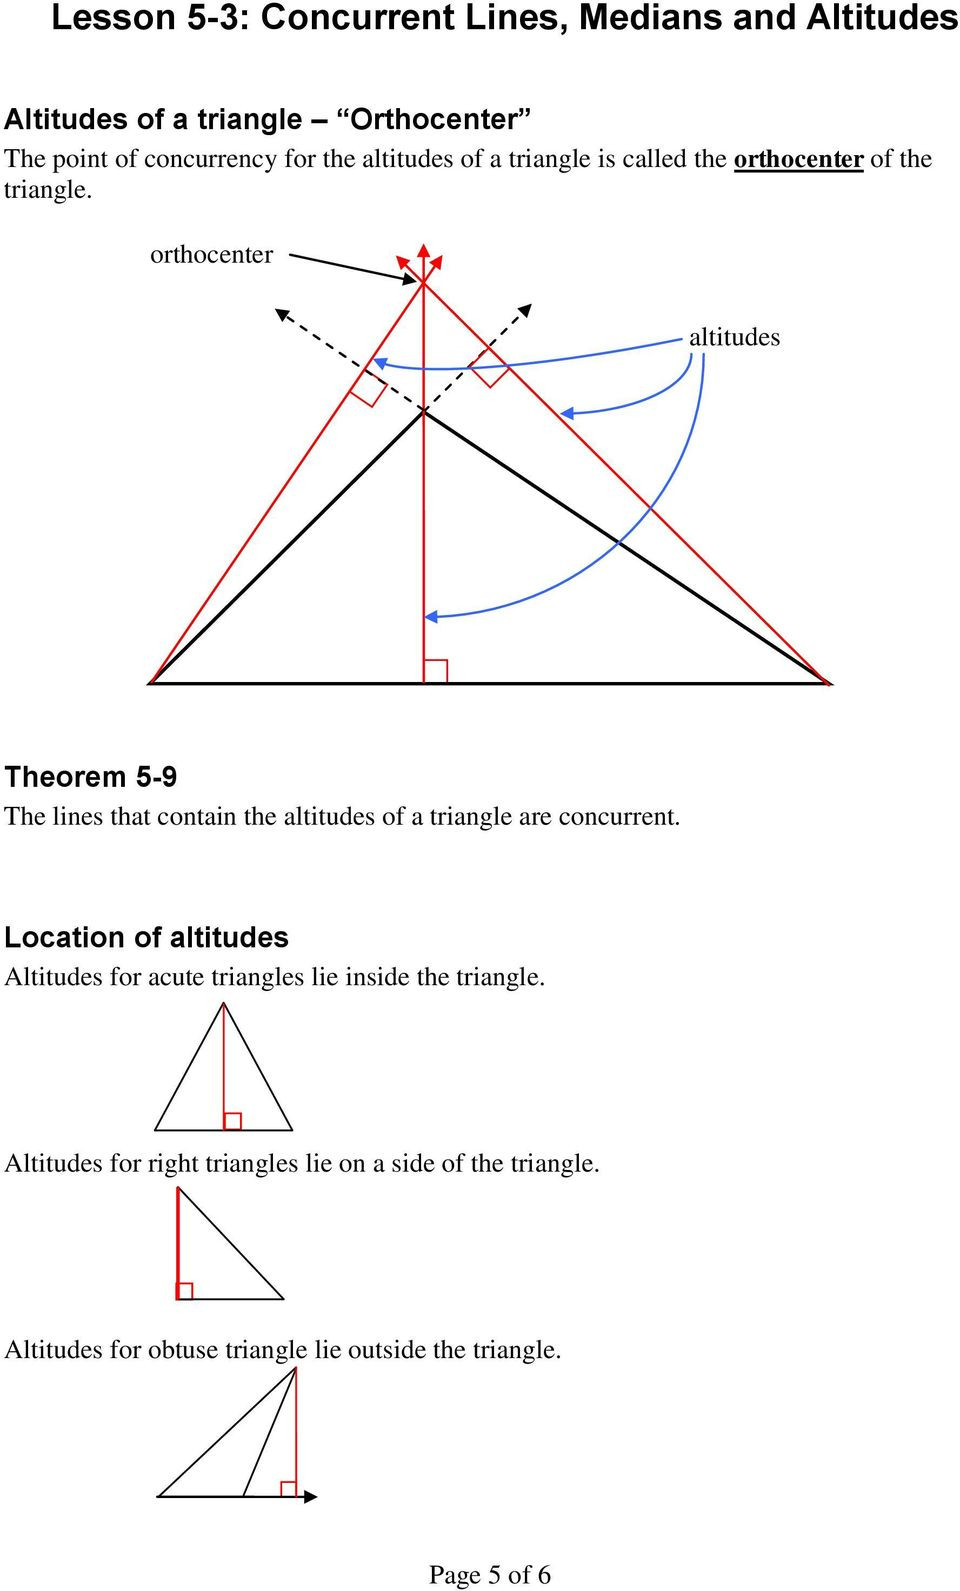 Points Of Concurrency Worksheet Lesson 5 3 Concurrent Lines Medians and Altitudes Pdf